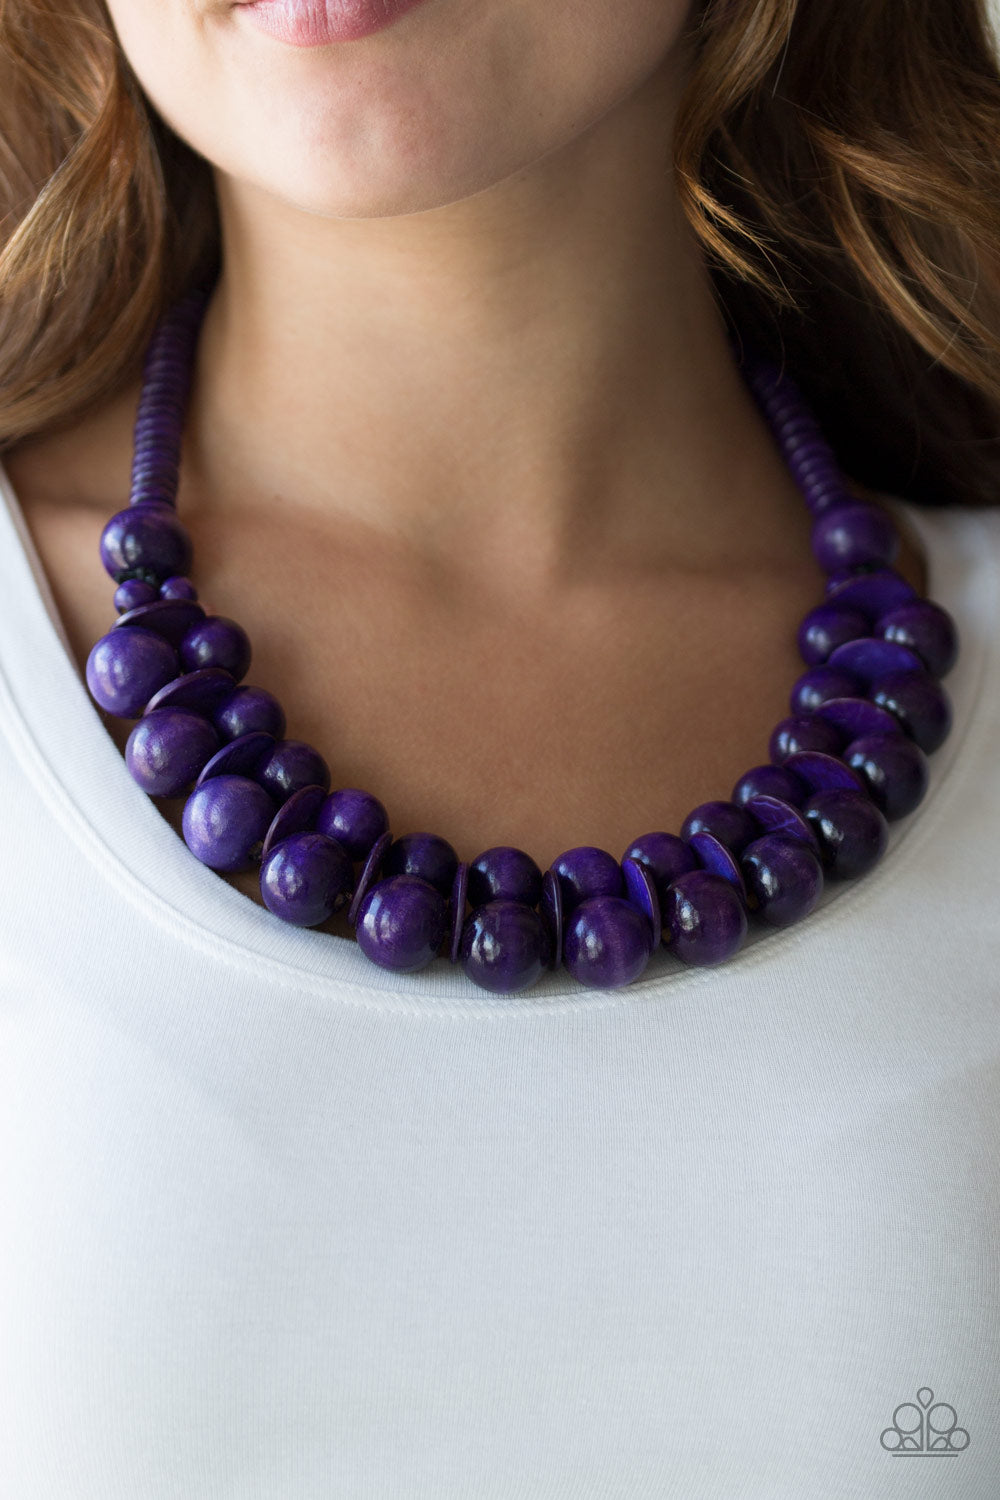 Paparazzi - Caribbean Cover Girl - Purple Wood Necklace Set - Classy Jewels by Linda